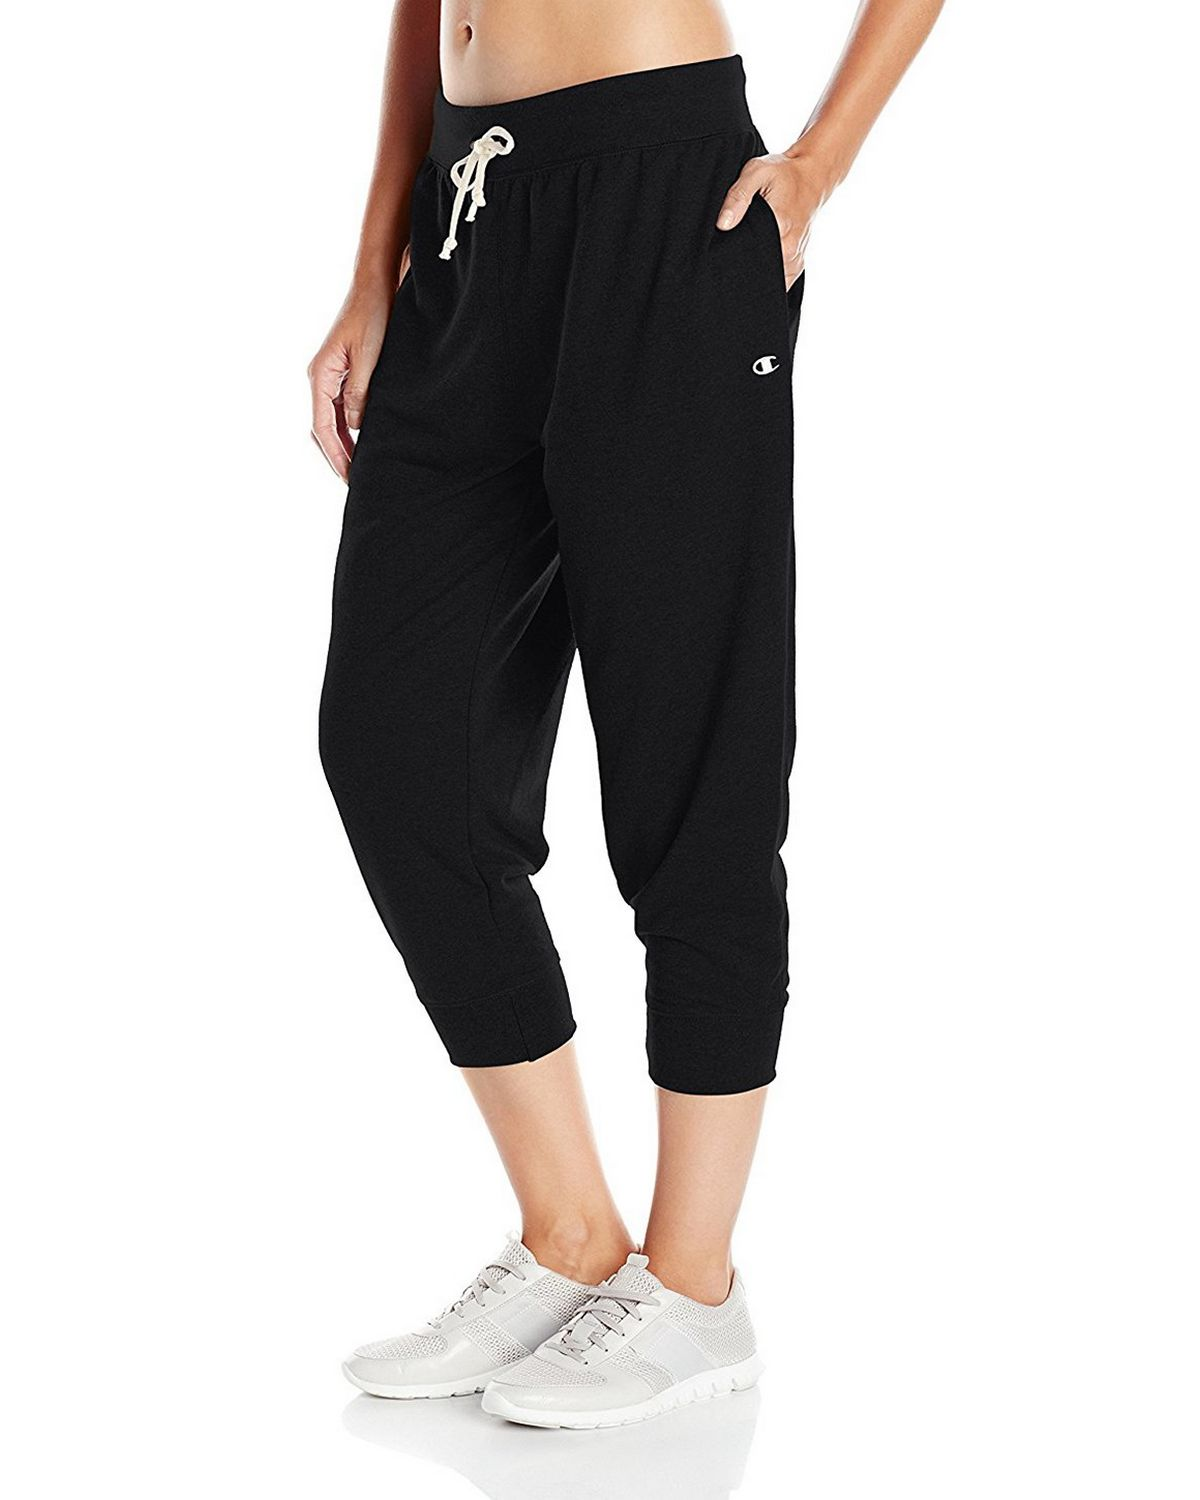 Champion M0945 Womens French Jogger Capris - Black - M M0945